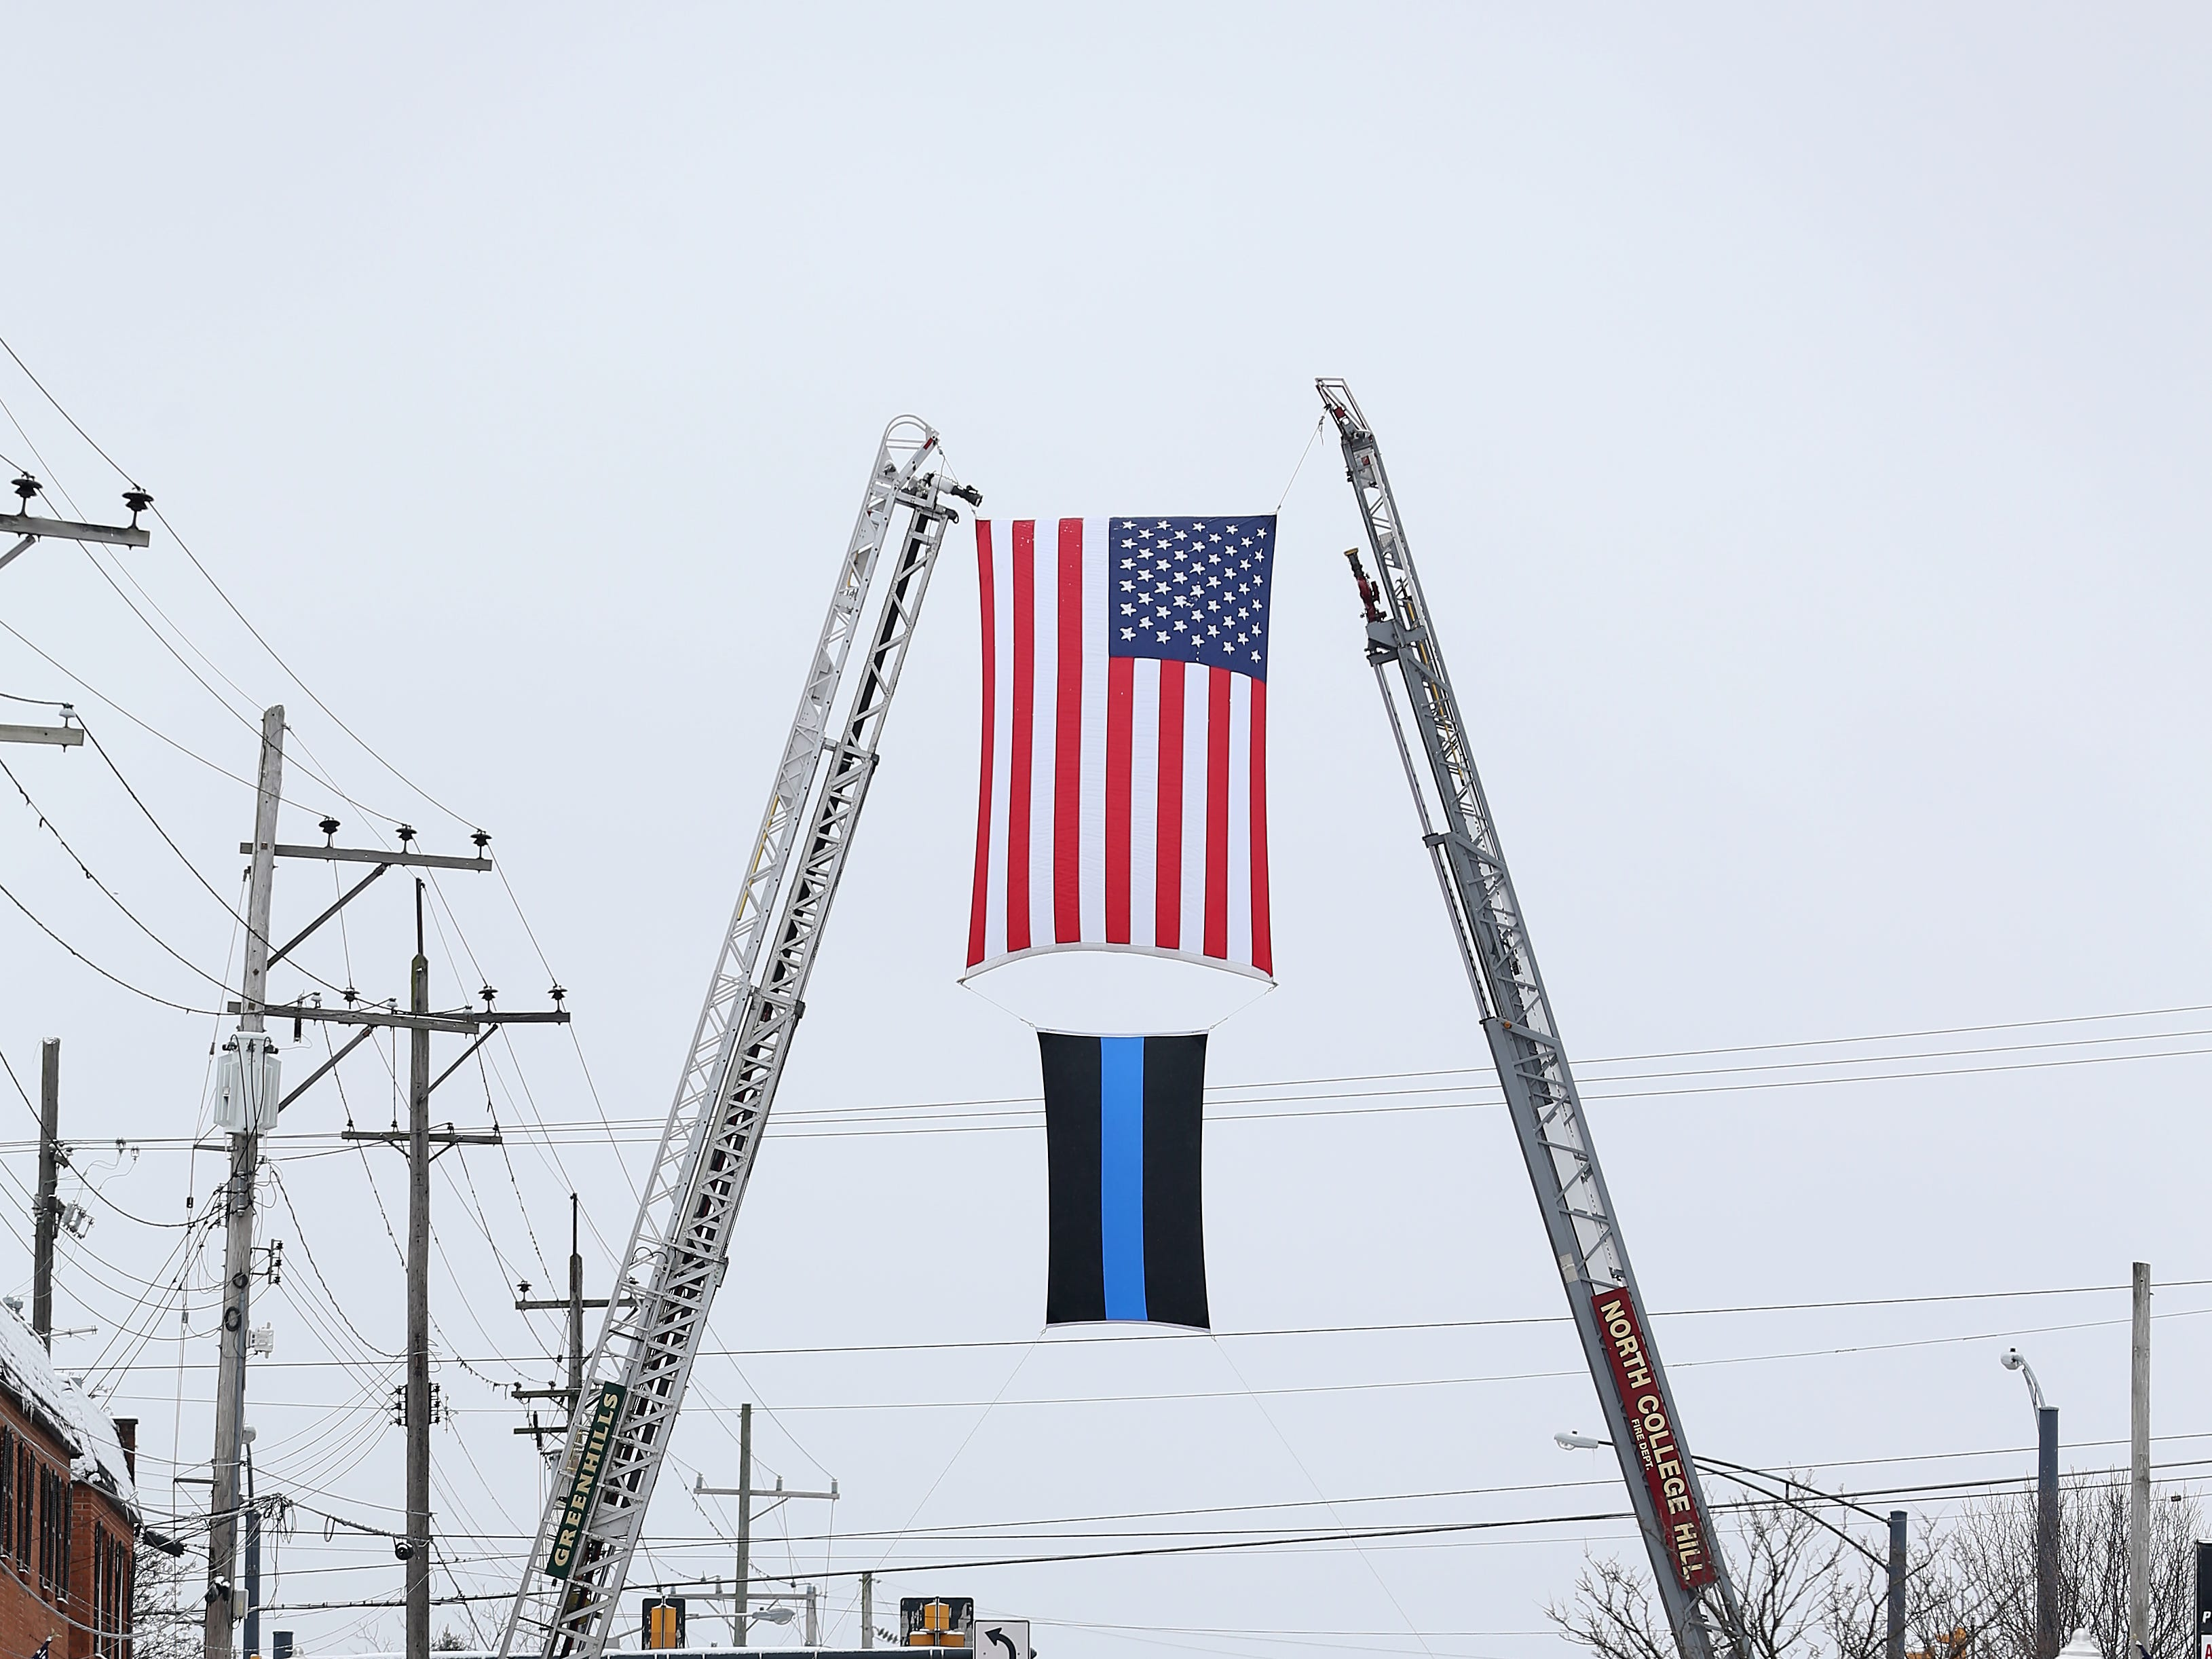 The procession for Colerain Township Police Officer Dale Woods passes through North College Hill along Galbraith Road, Saturday, Jan. 12, 2019, in North College Hill, Ohio. Woods, 46, who died Monday after being Hill by a pickup truck Jan. 4 while working at the scene of a crash.